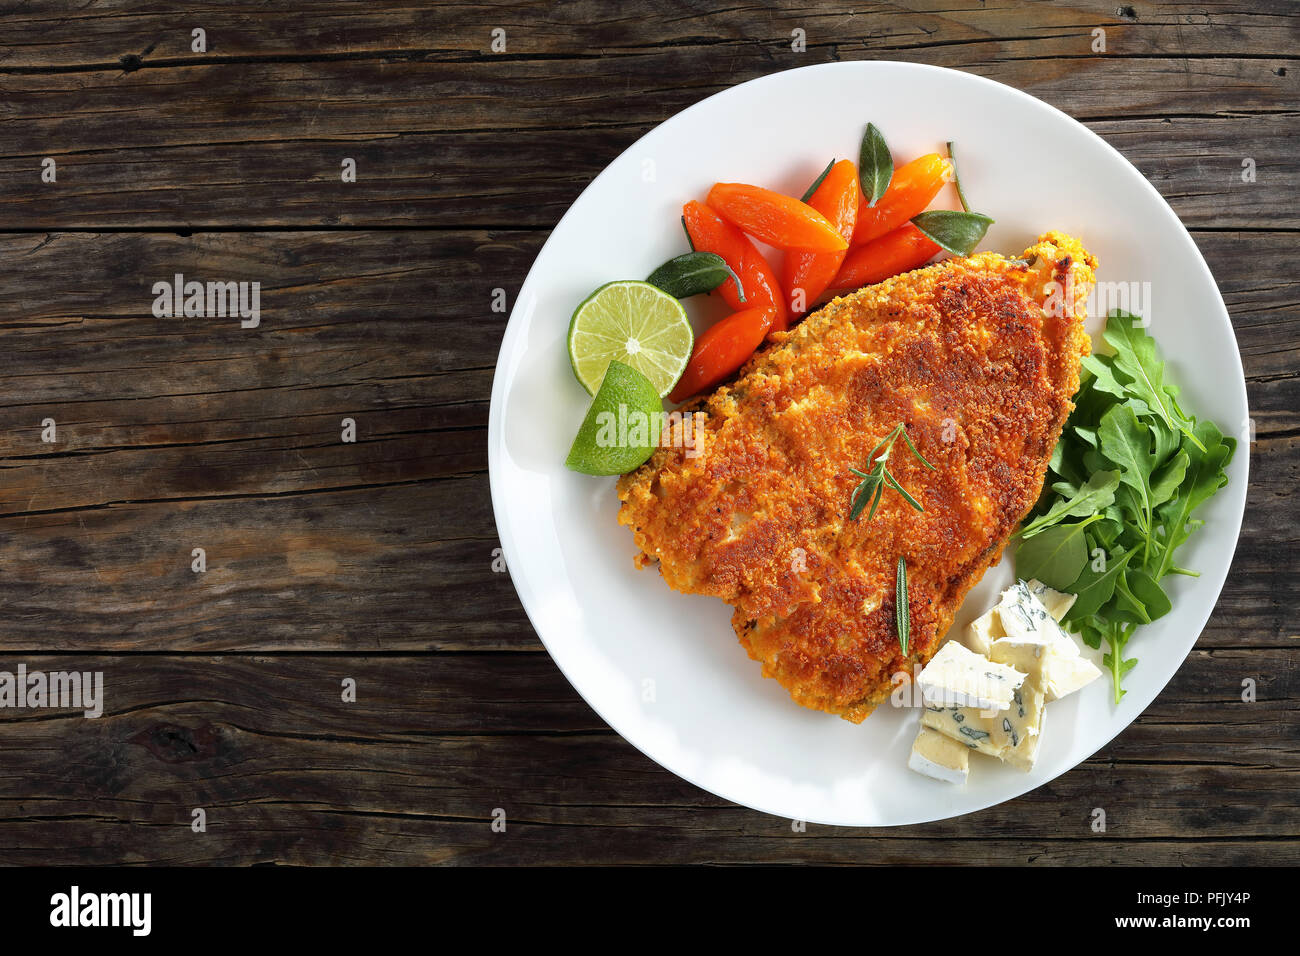 Fried Breaded White Fish Steak Served On White Plate With